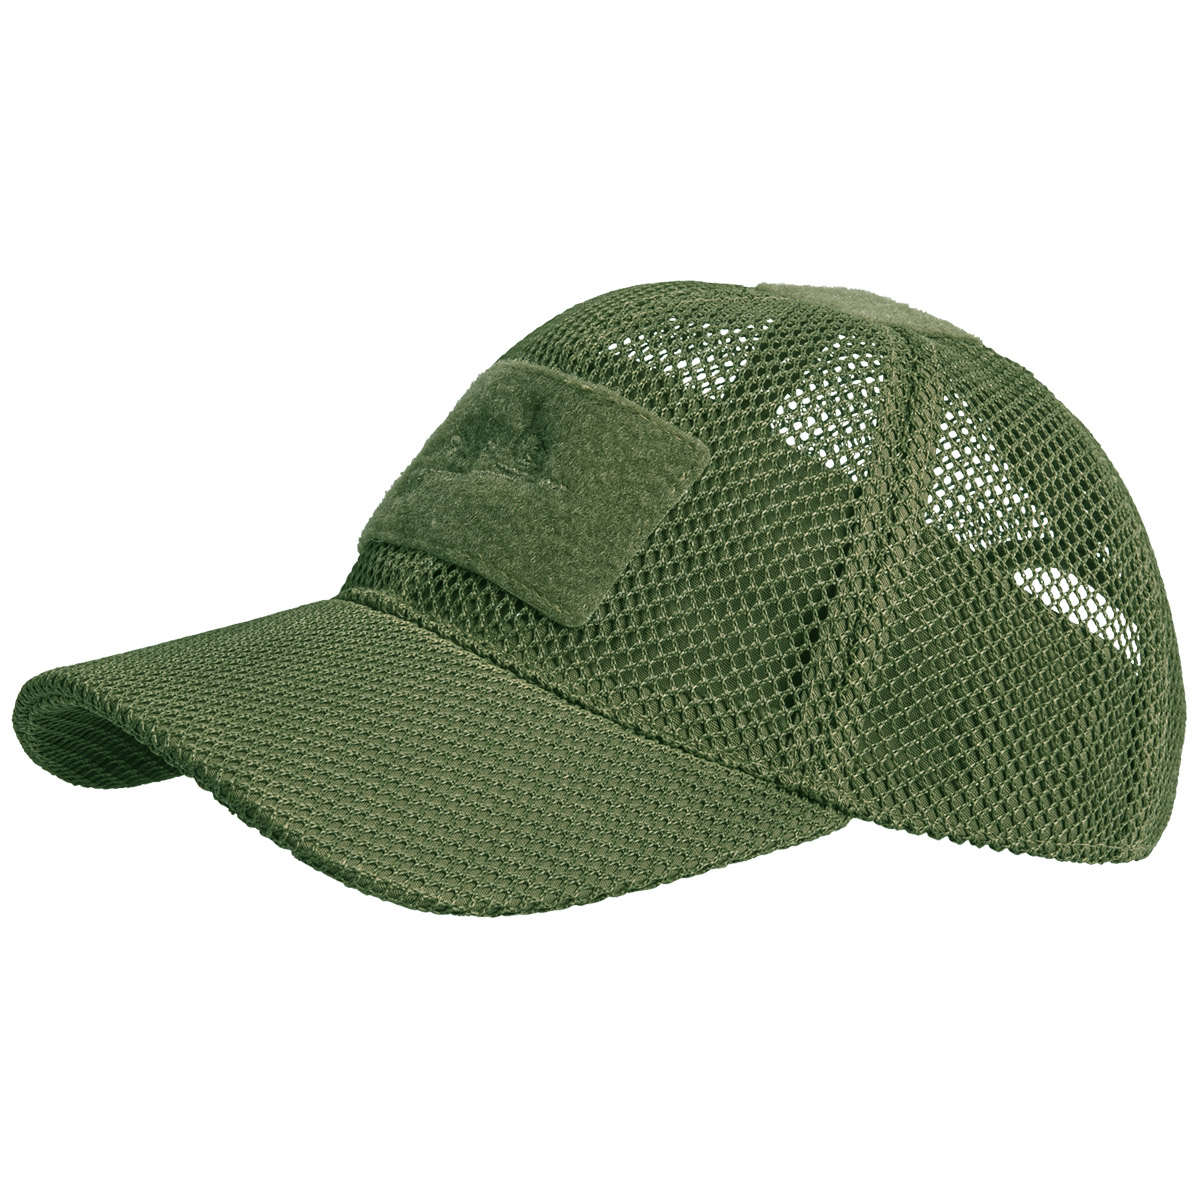 Mesh Snapback Hats Wholesale Hats offers blank, screen printed and custom embroidered wholesale mesh Snapback hats at the lowest prices online. You can simply start your order for these hats online by clicking your favorite style below or call us at today!